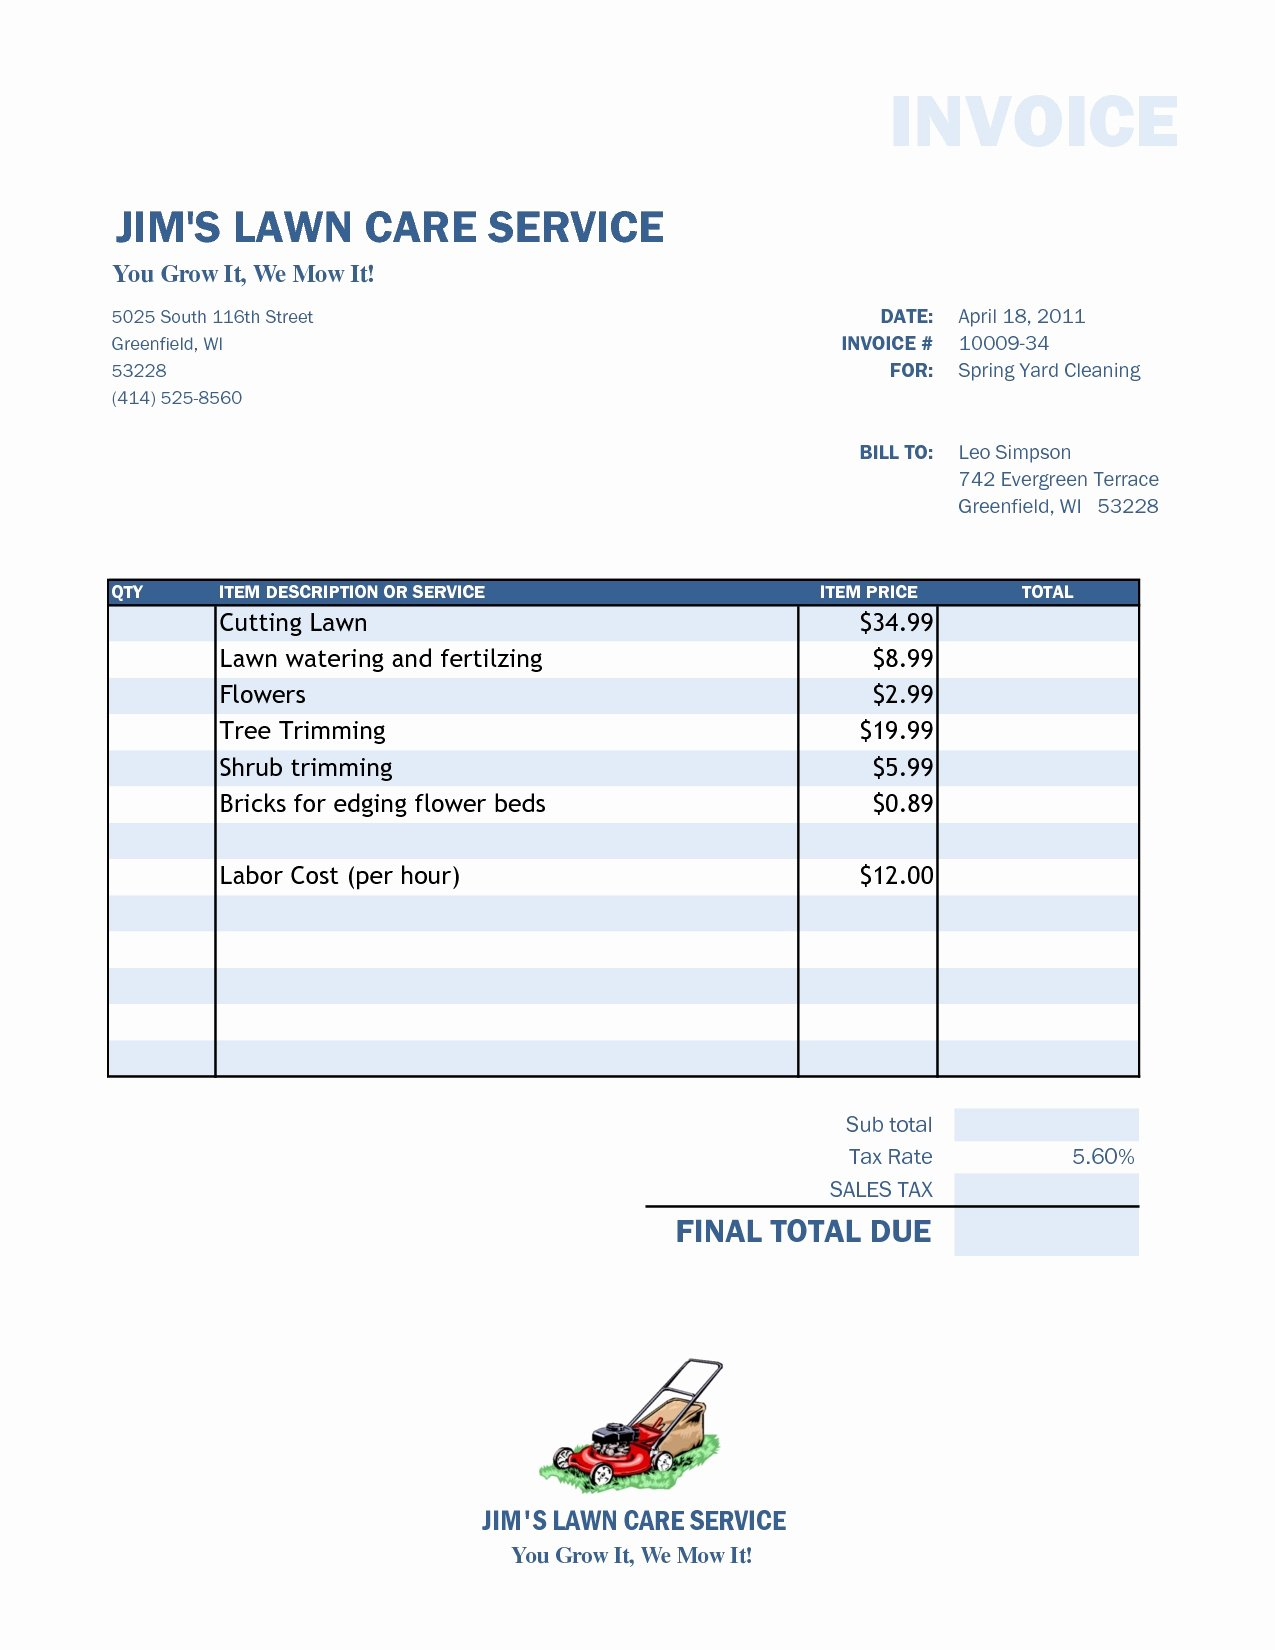 Legislative Bill Template New Lawn Care Invoice Template